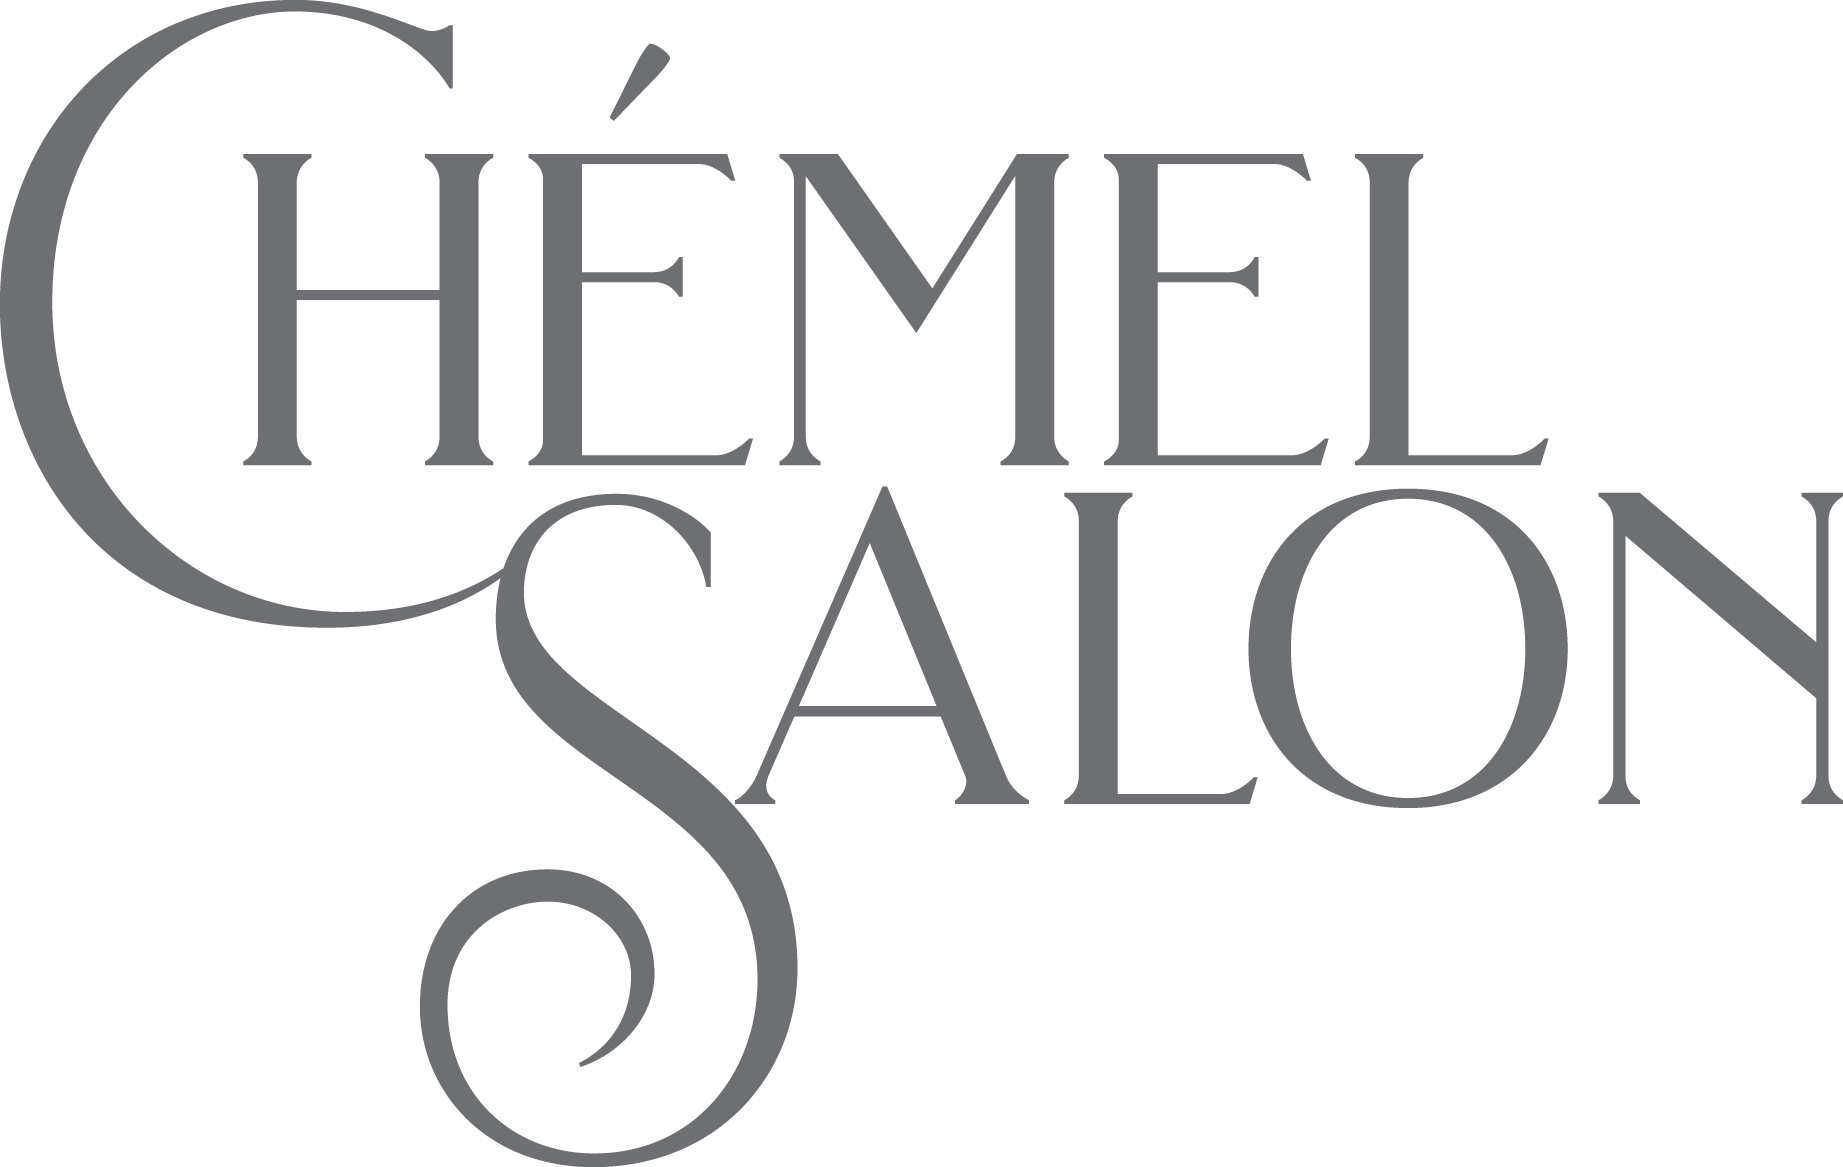 Chemel Salon logo